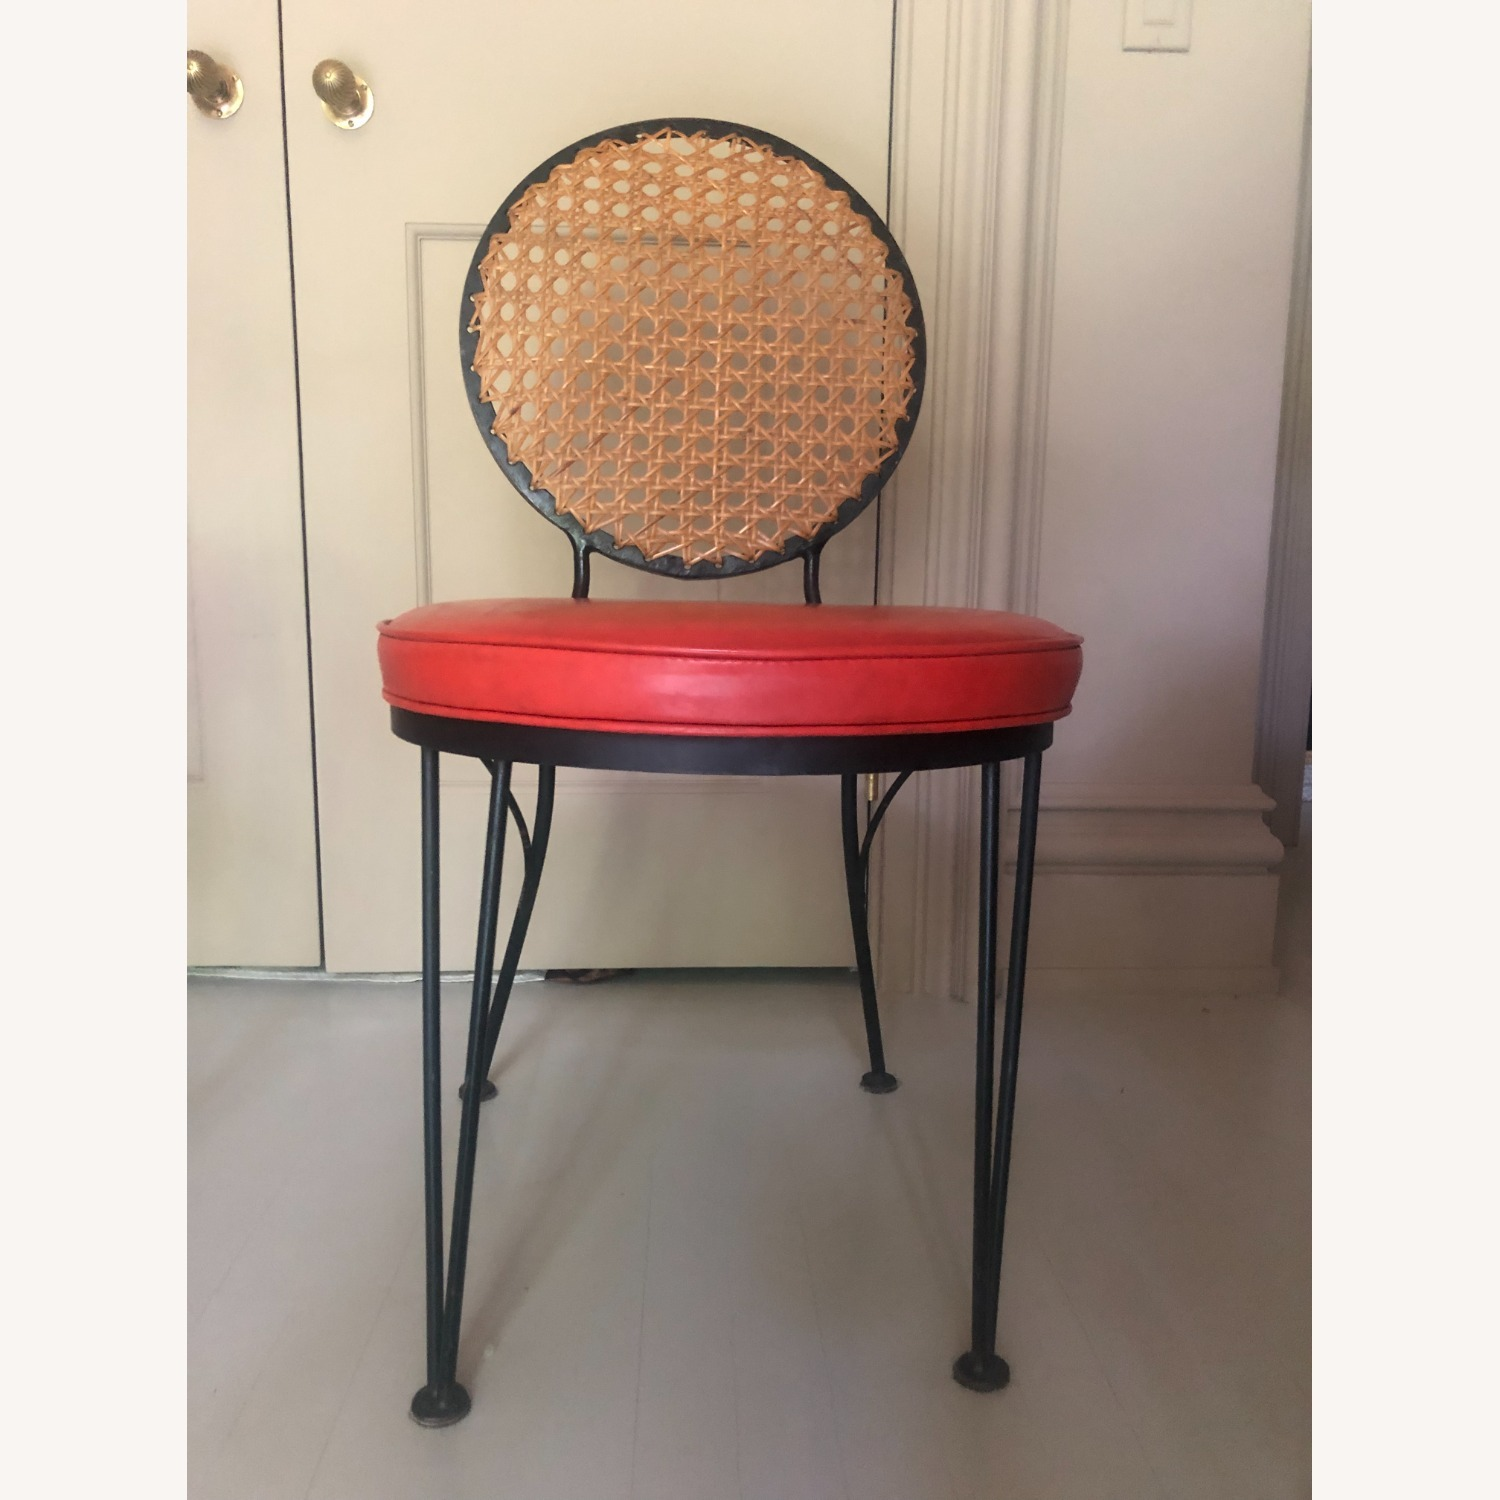 Vintage 1950s French Cane Chairs - image-0